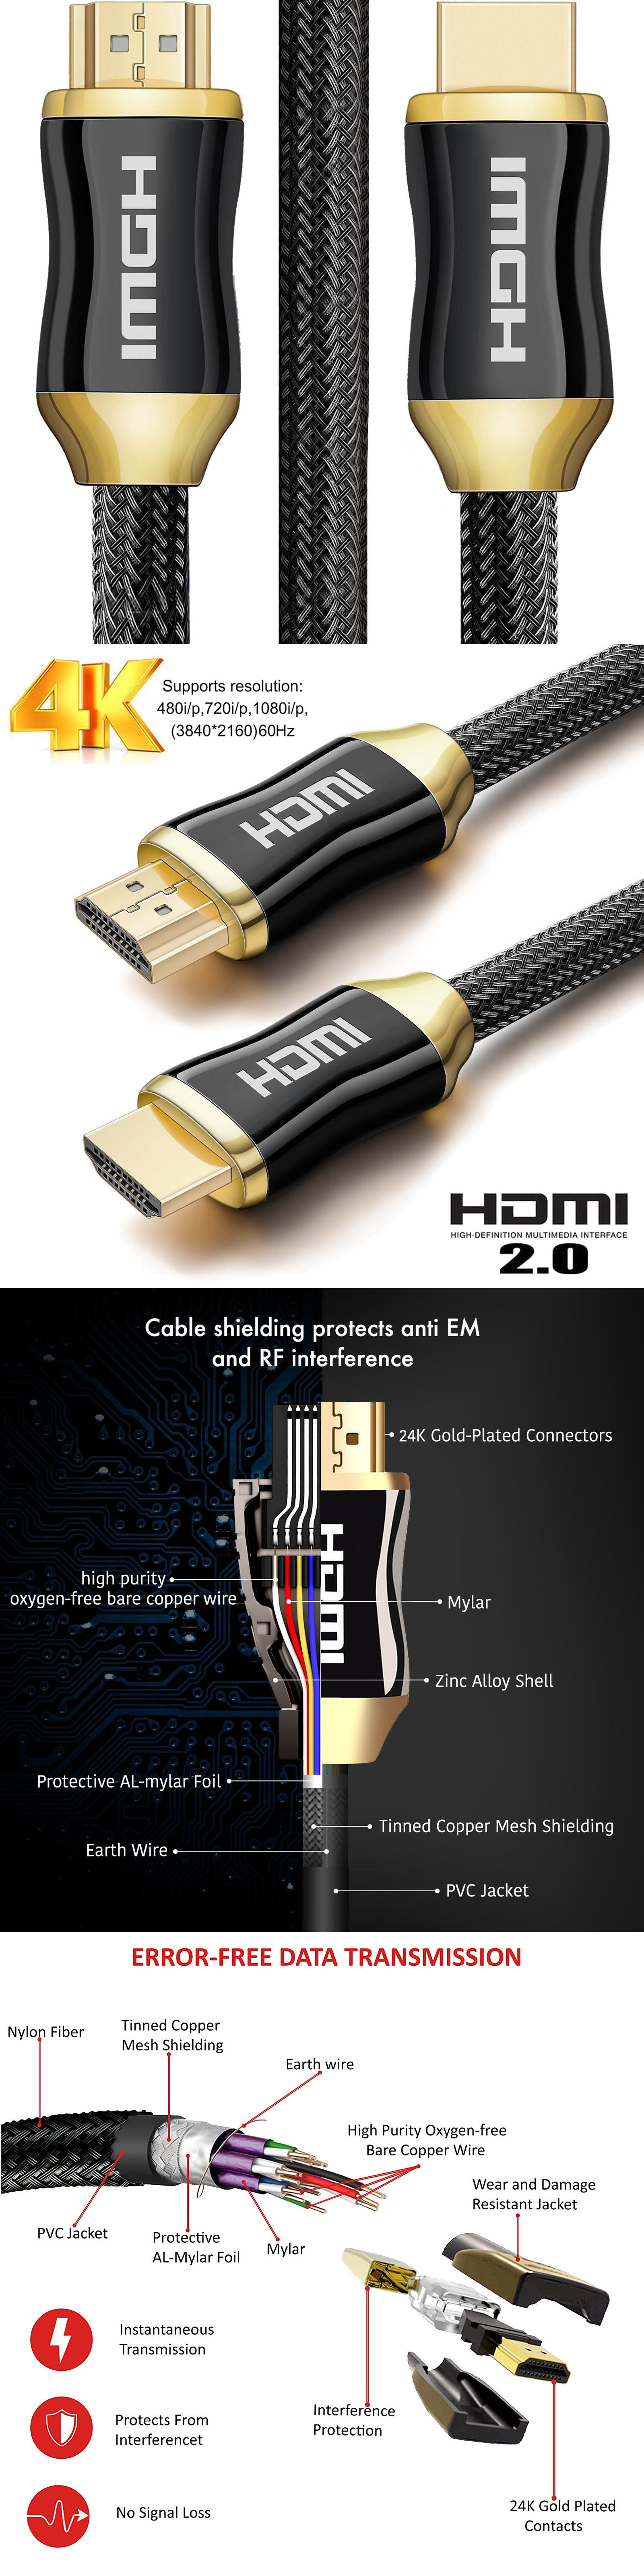 Video Cables and Interconnects: Braided Ultra Hd Hdmi Cable V2.0 ...